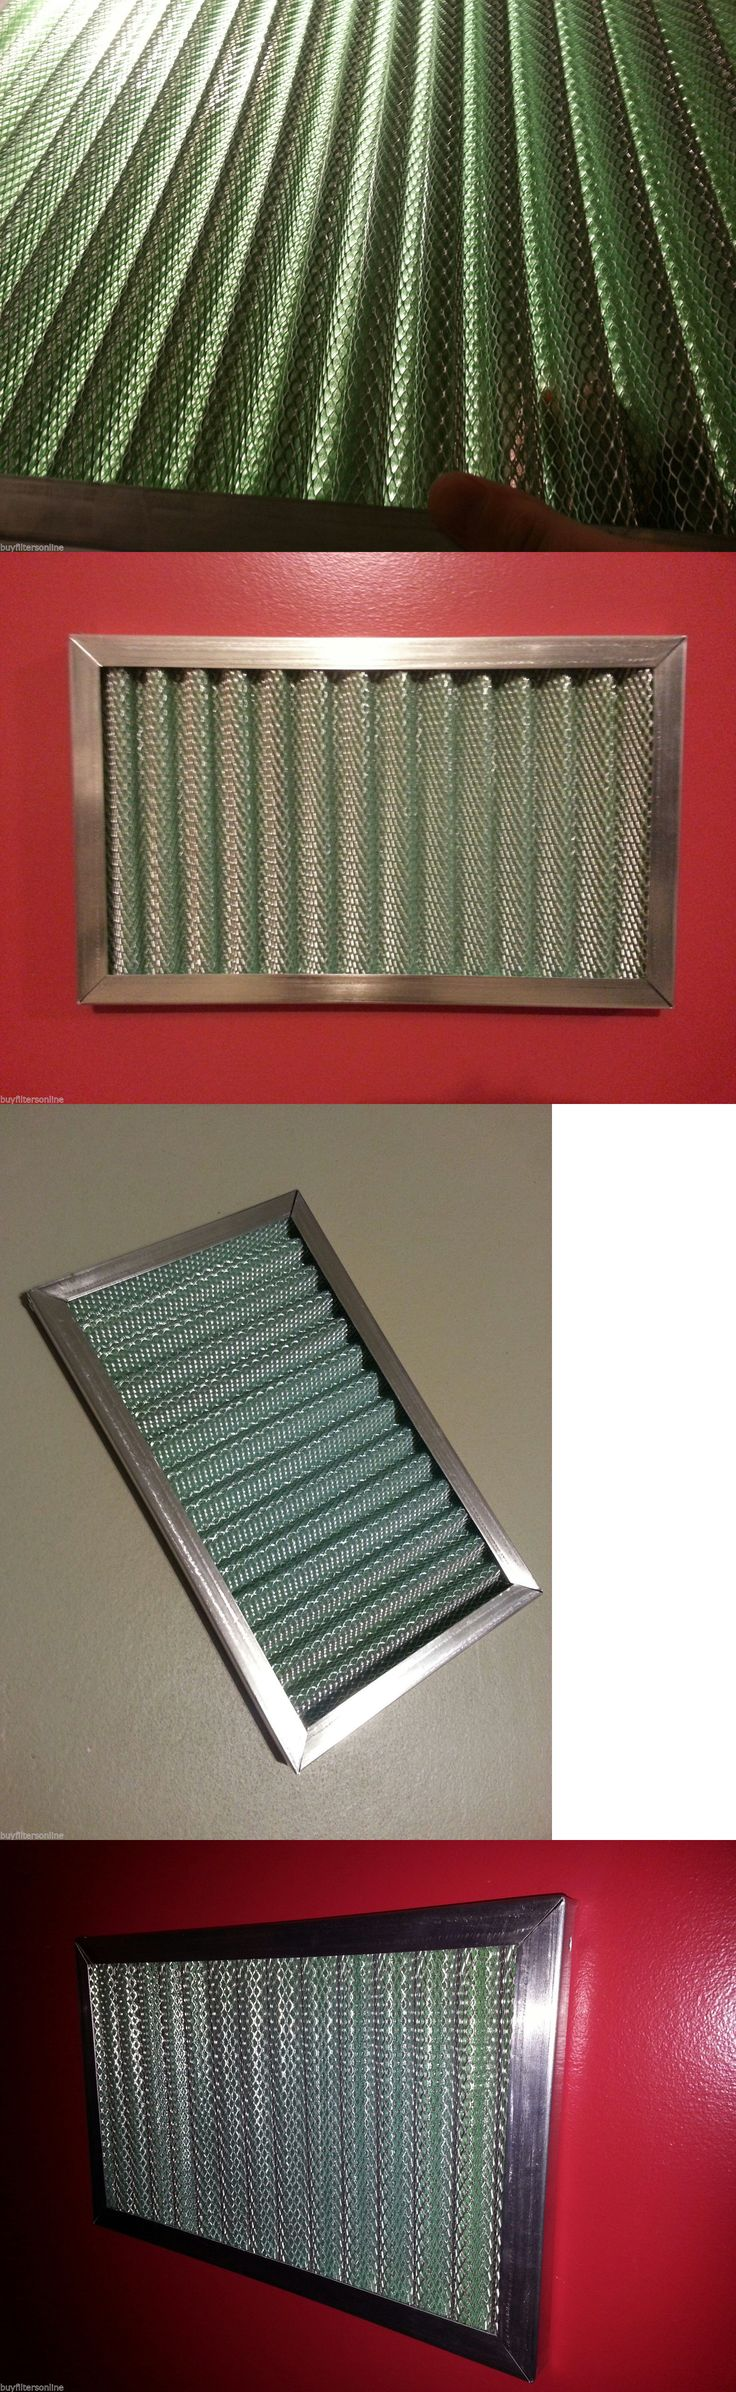 Best furnace air filters for allergies - Air Filters 43509 Ultimate Allergy Home Pleated Air Filter Washable Permanent Reusable Furnace Ac